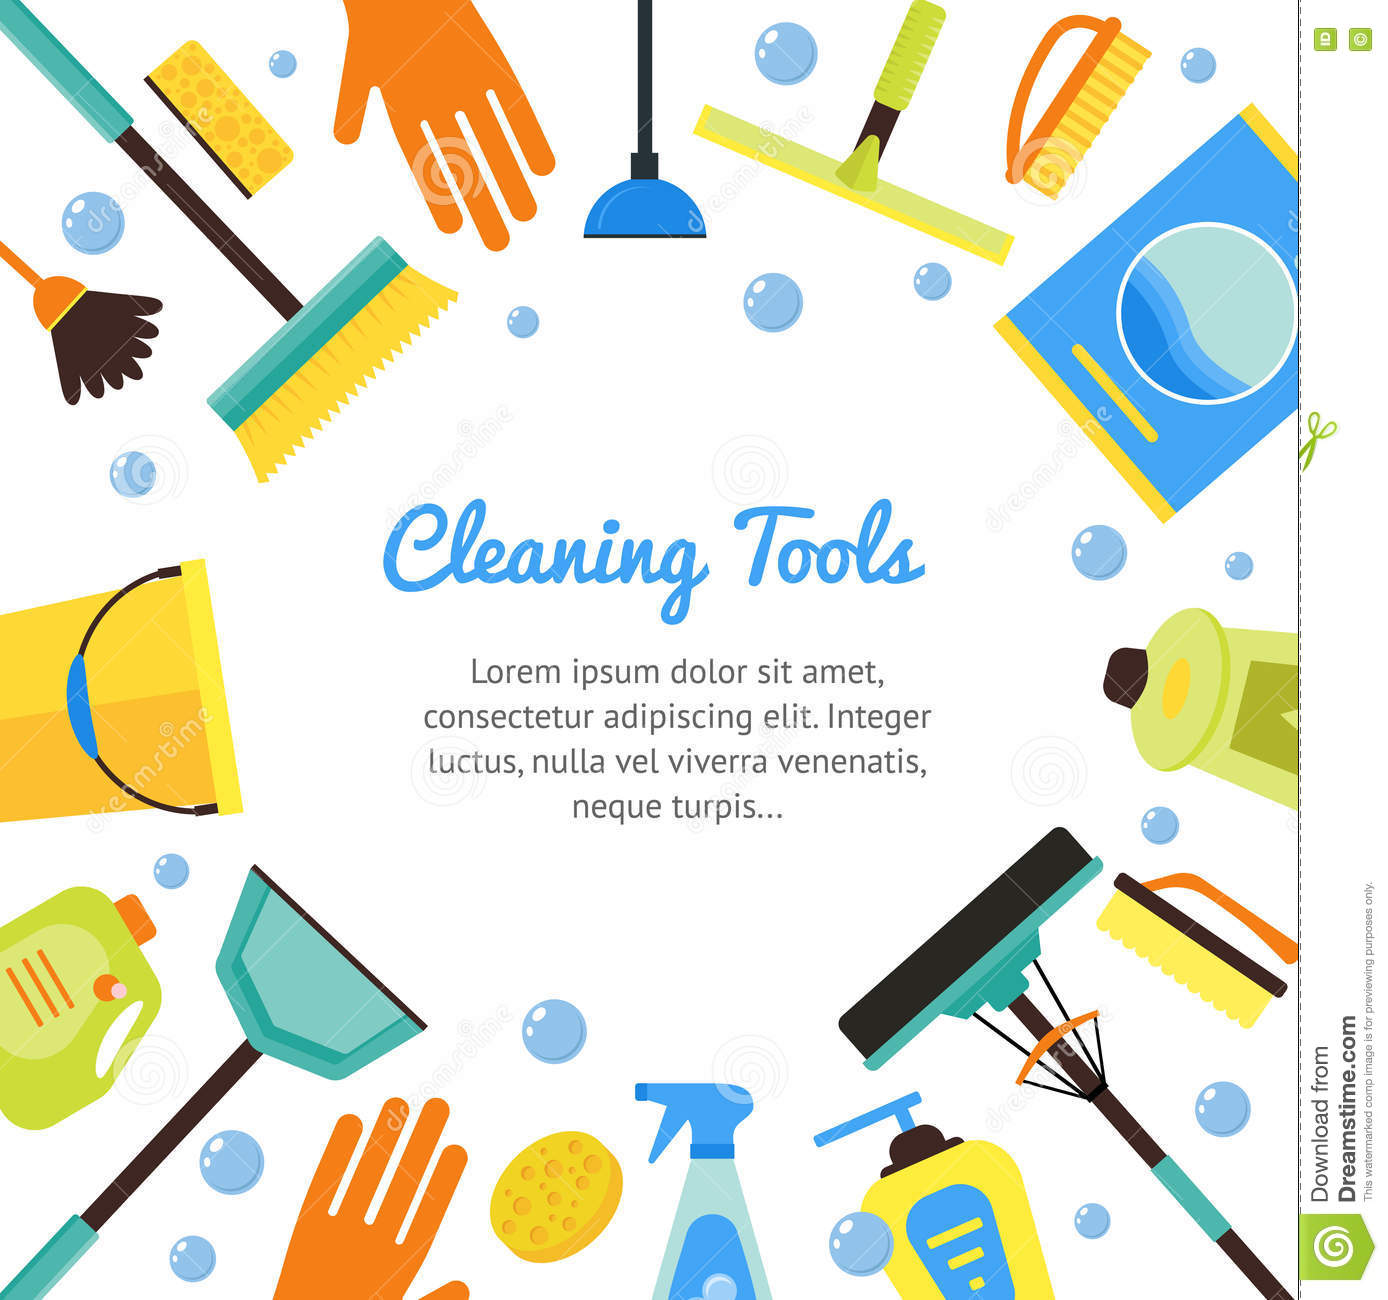 Janitorial services vector images for Building design tool